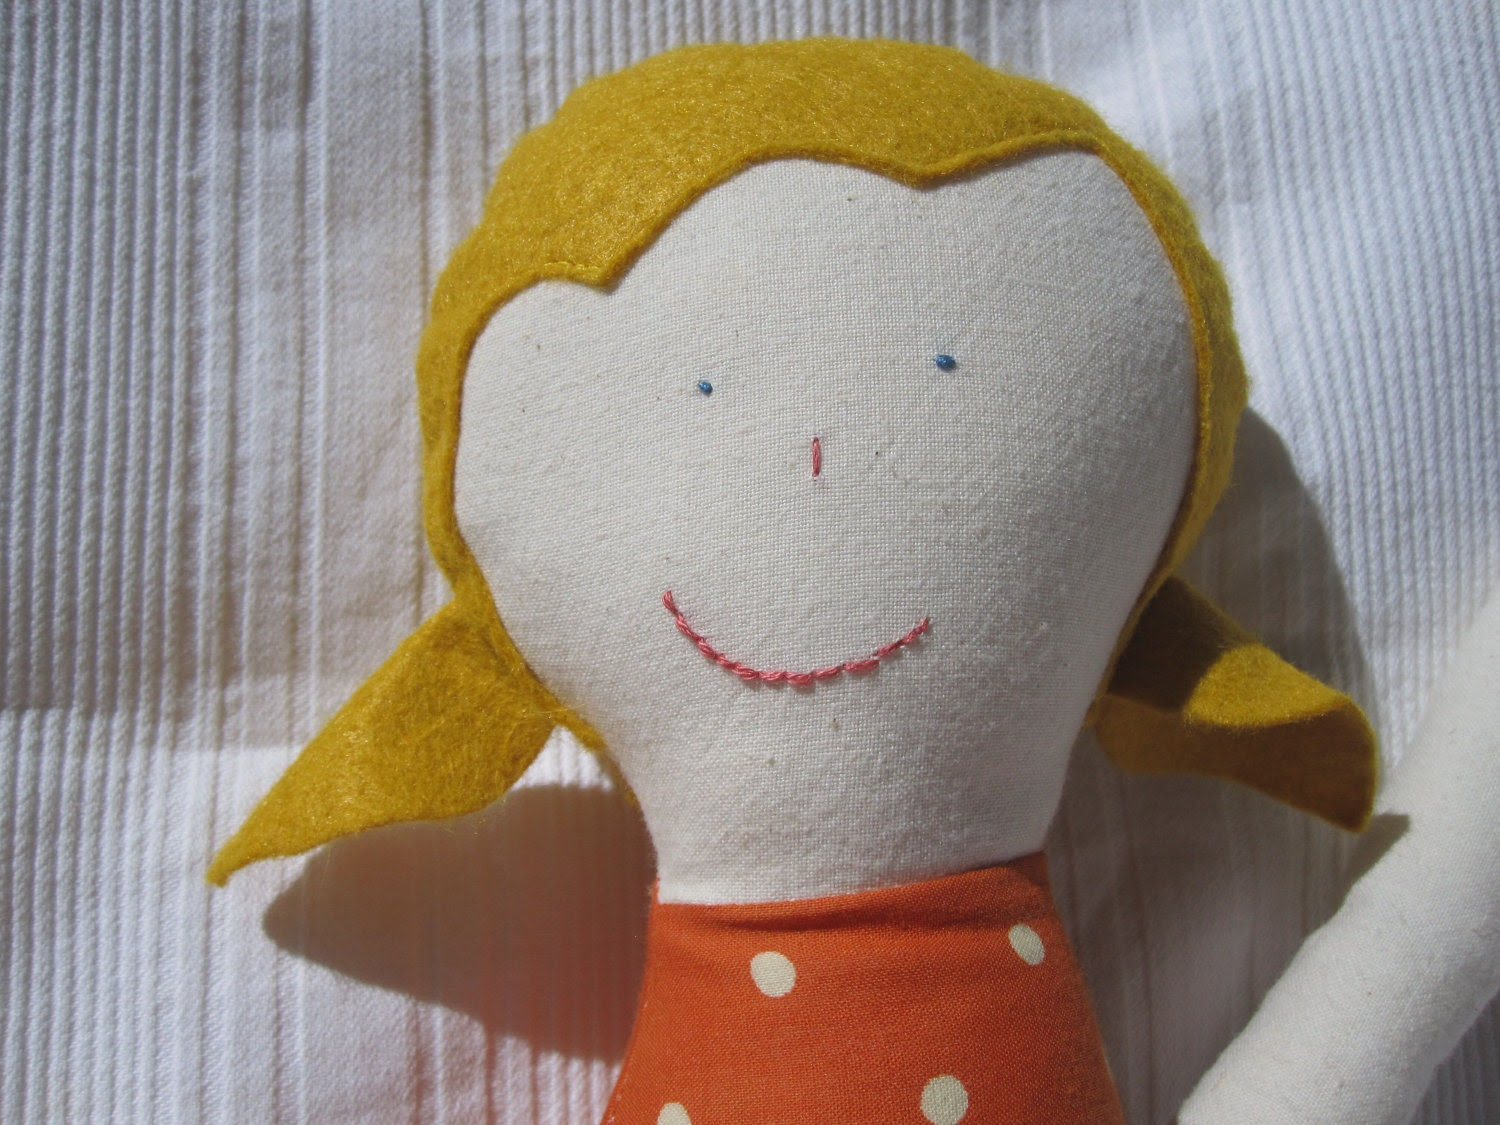 ON SALE The Sophie doll - kids gift under 30